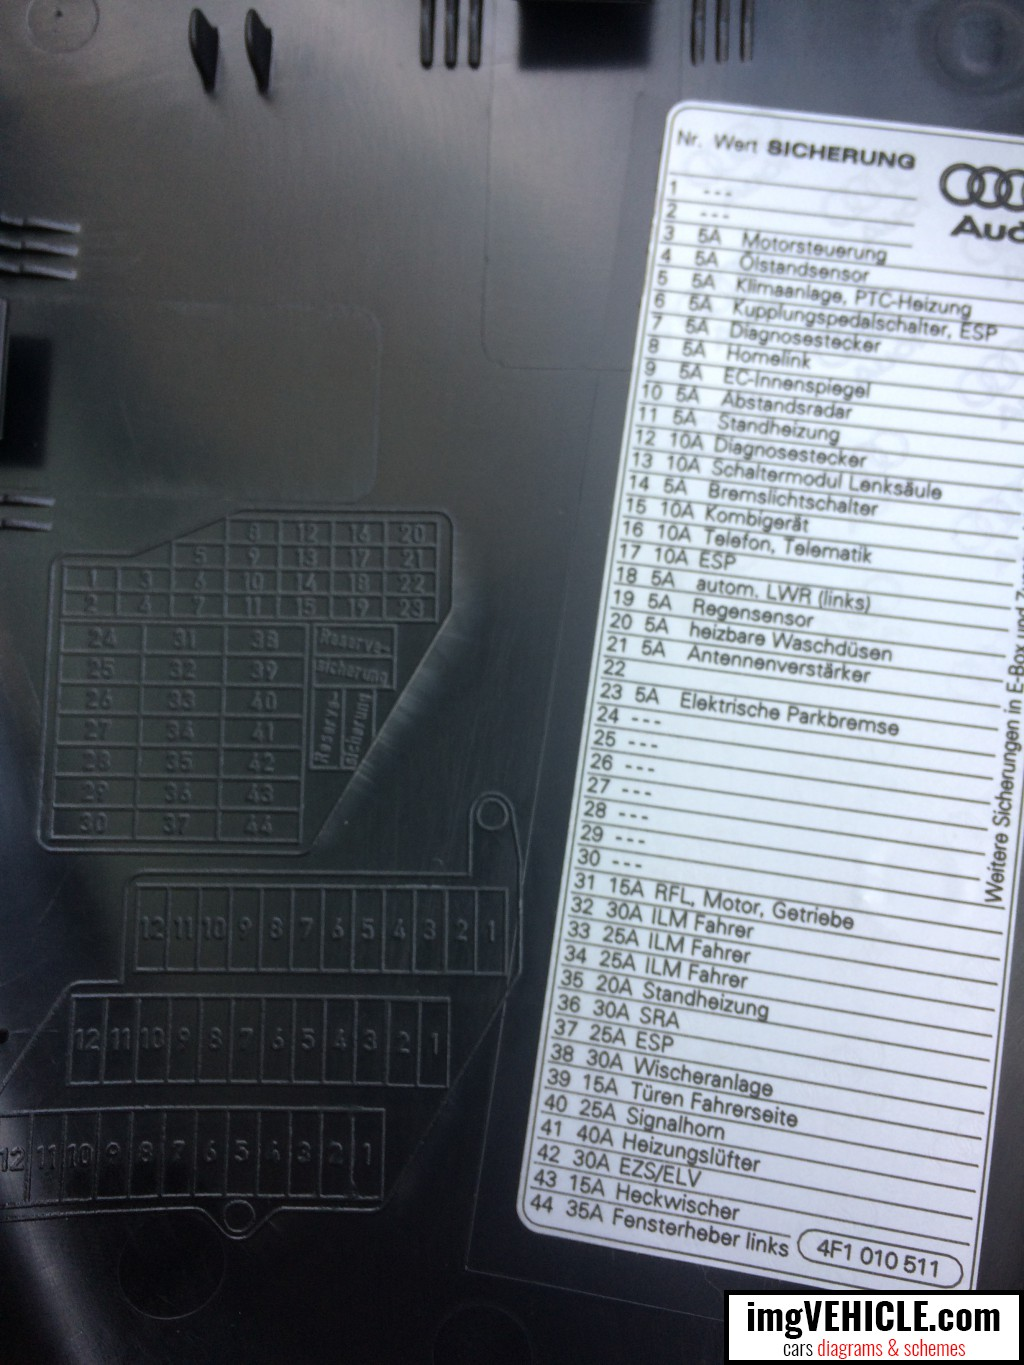 Audi A6 C6 Fuse Box Diagrams Schemes Mazda 2 2009 Location Dash Panel Diagram